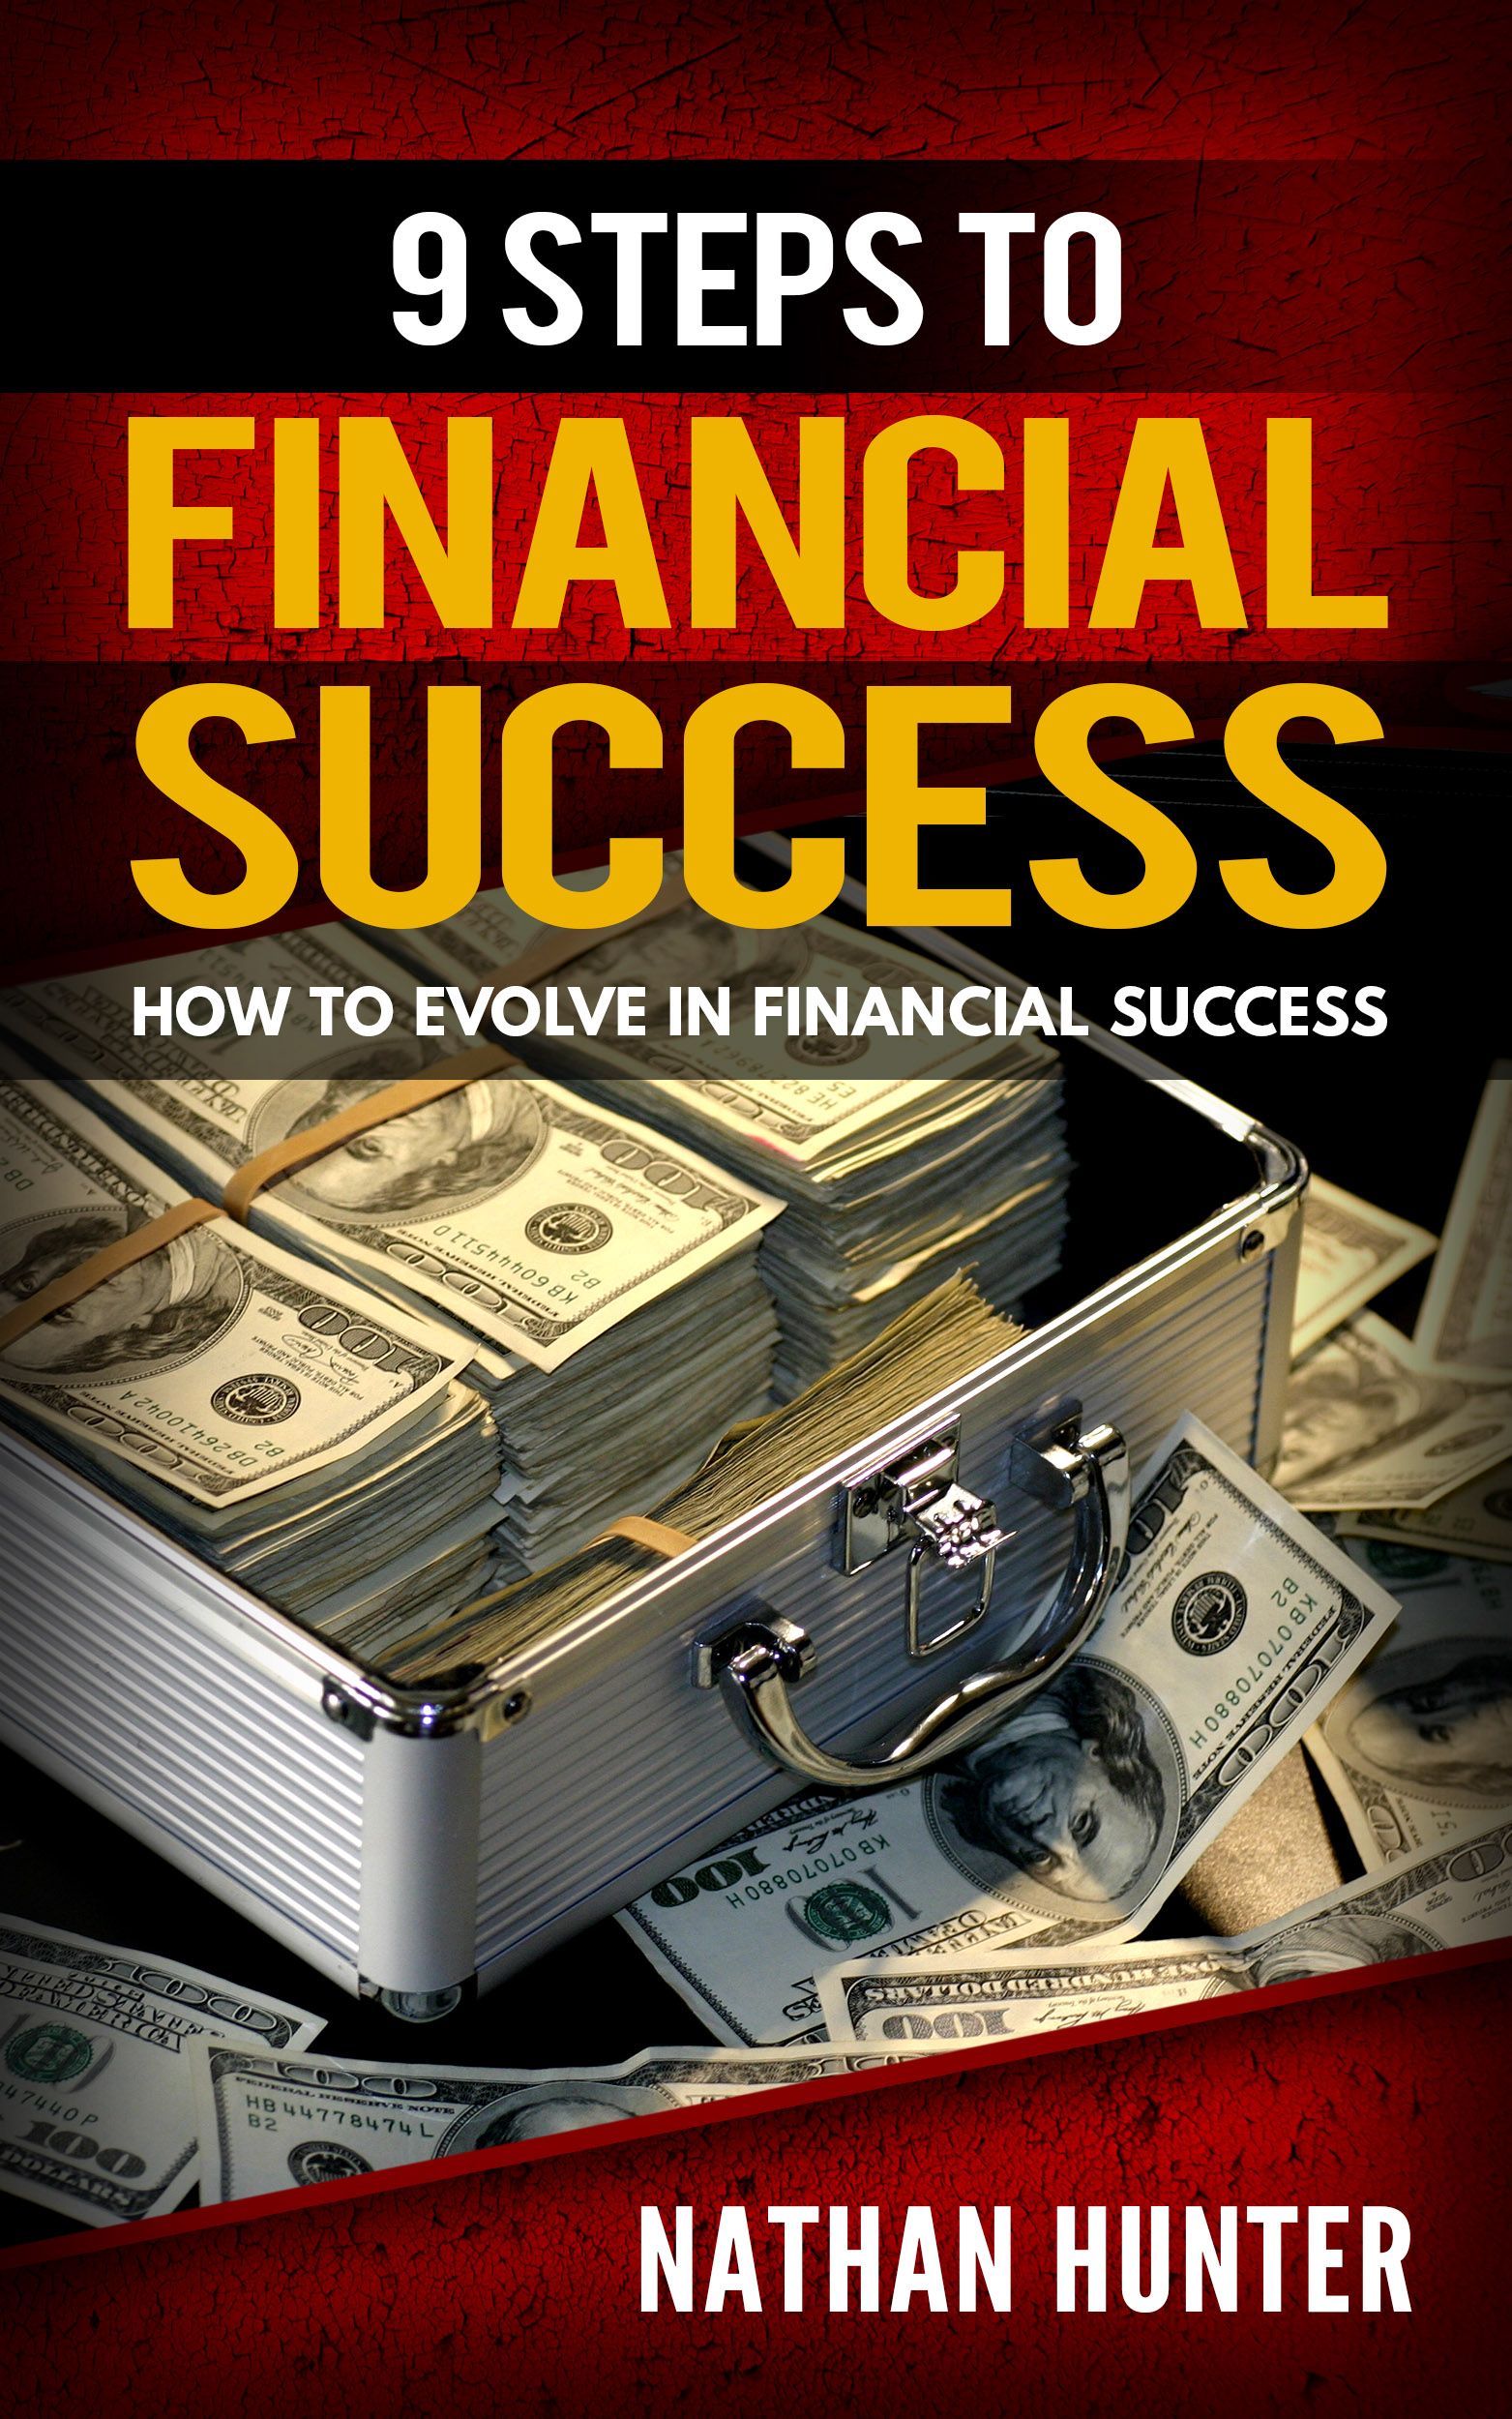 9 STEPS TO FINANCIAL SUCCESS Kindle Cover